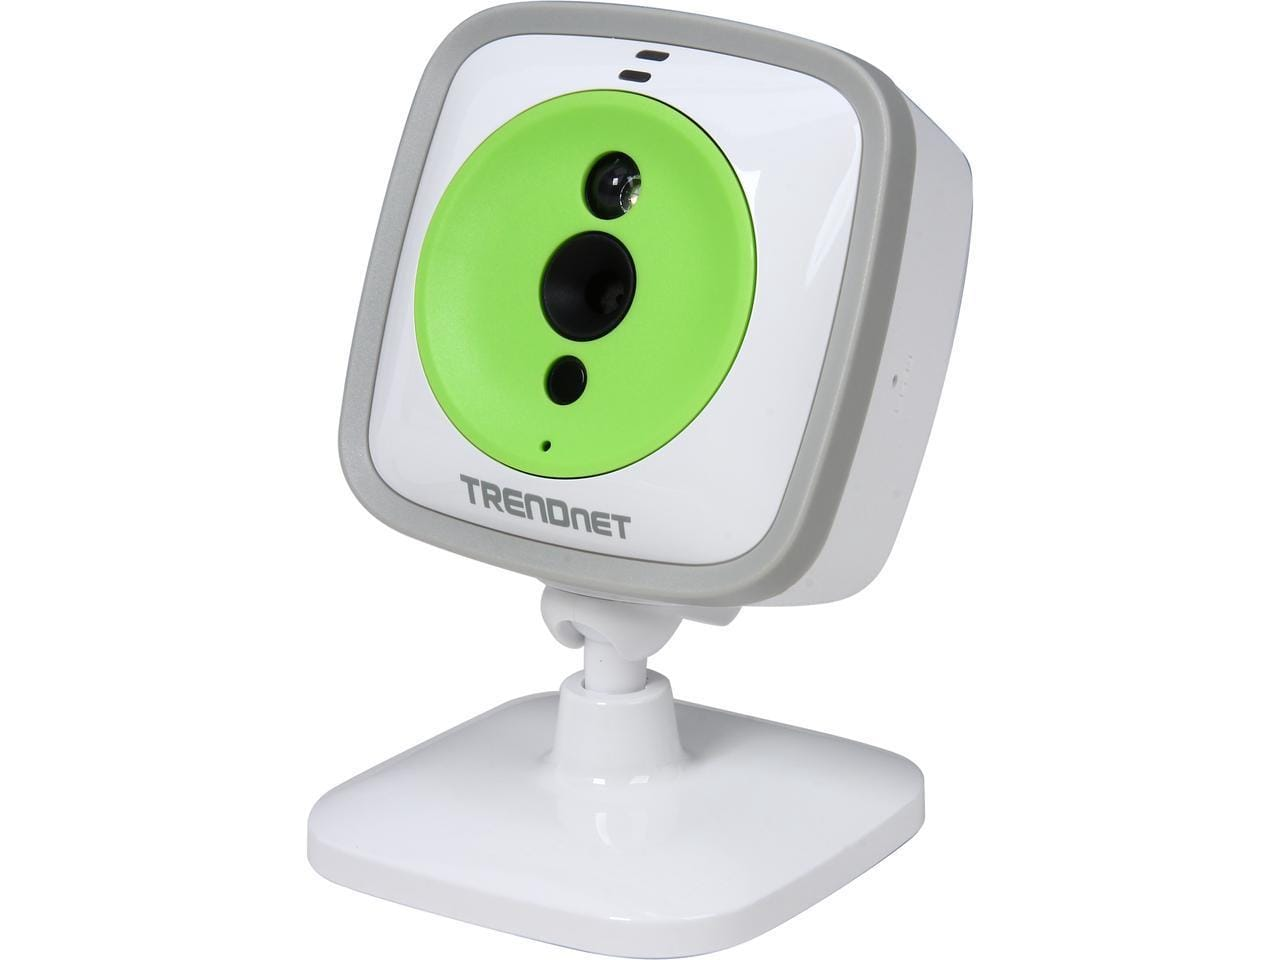 TRENDnet TV-IP743SIC Day/Night Wireless Baby Monitor/IP Camera with Built-In 2 Way Audio $15 @NF